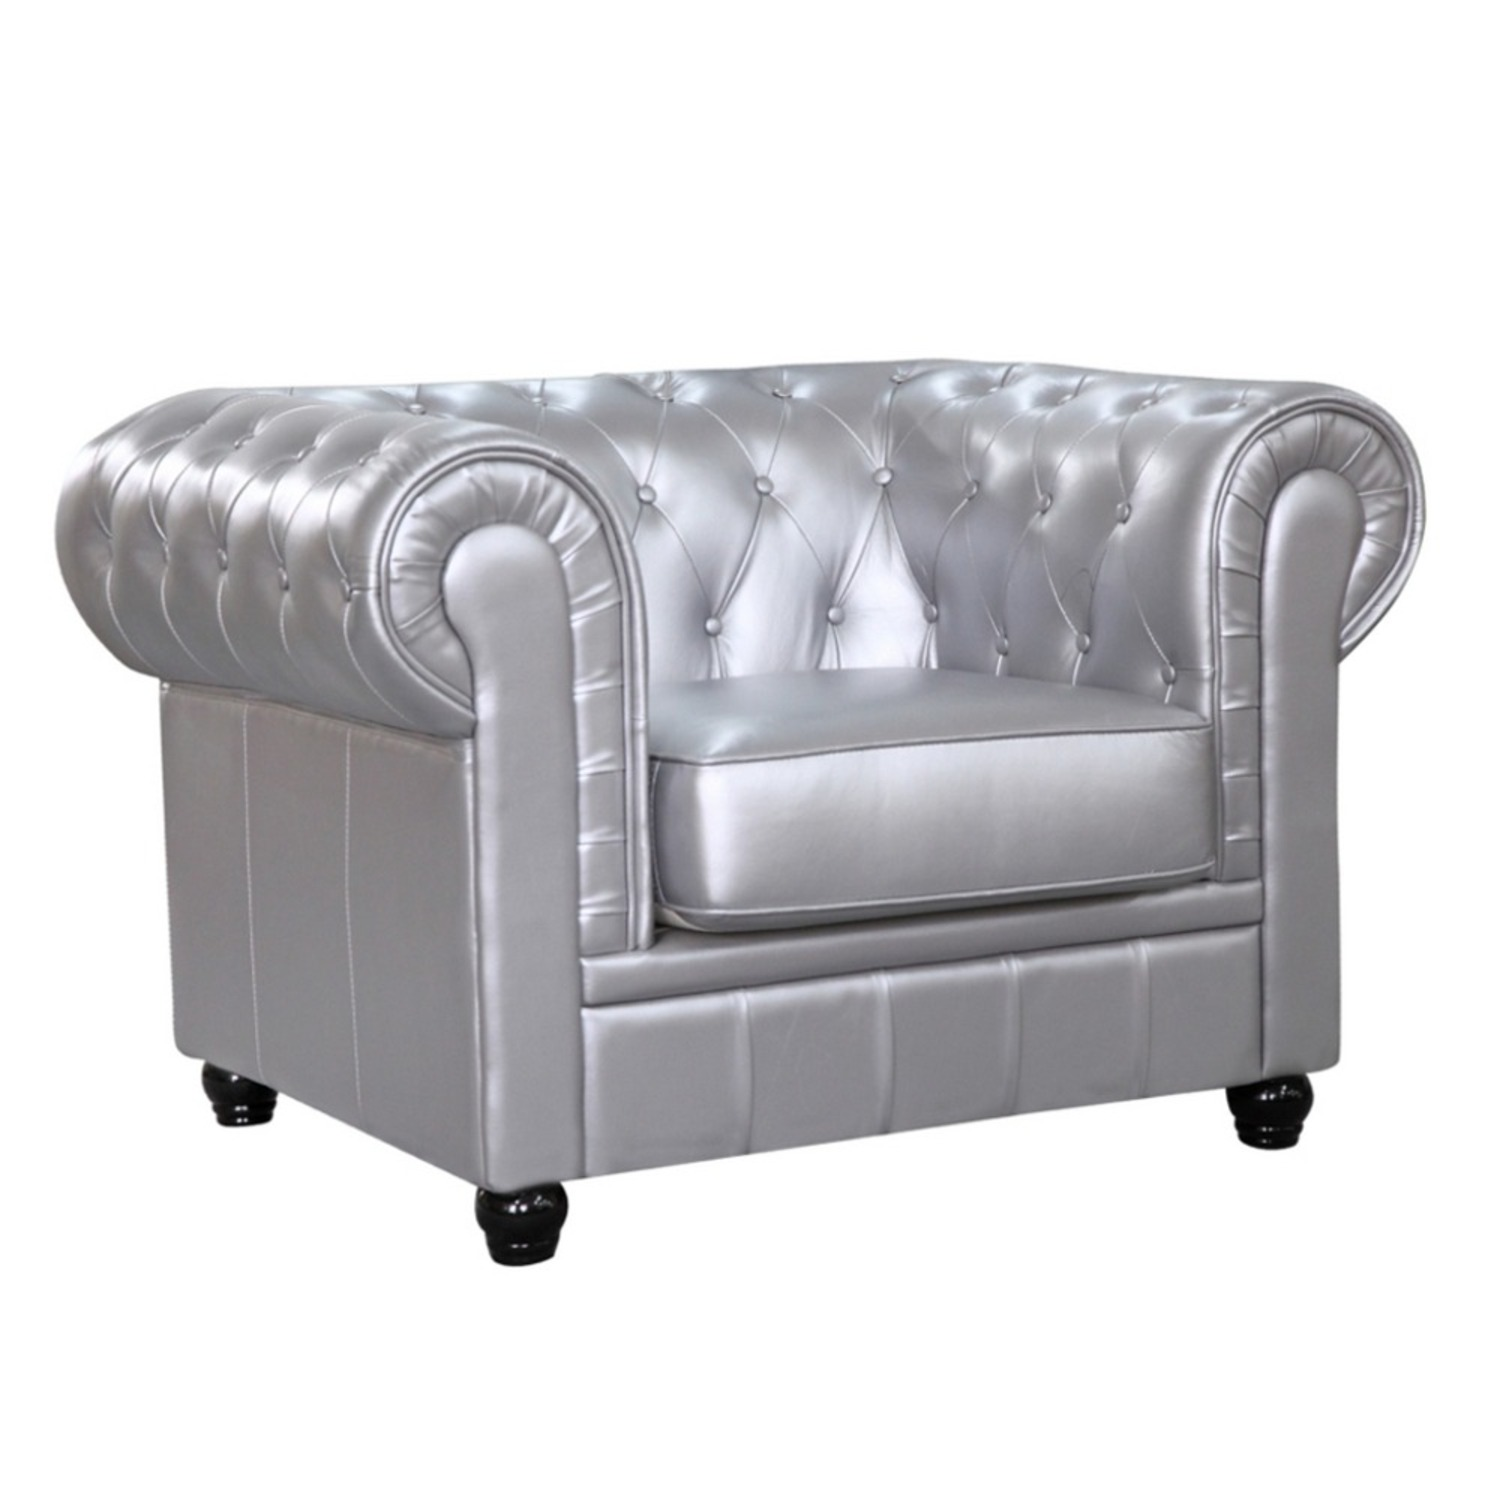 Modern Chair In Soft Silver Leatherette - image-0